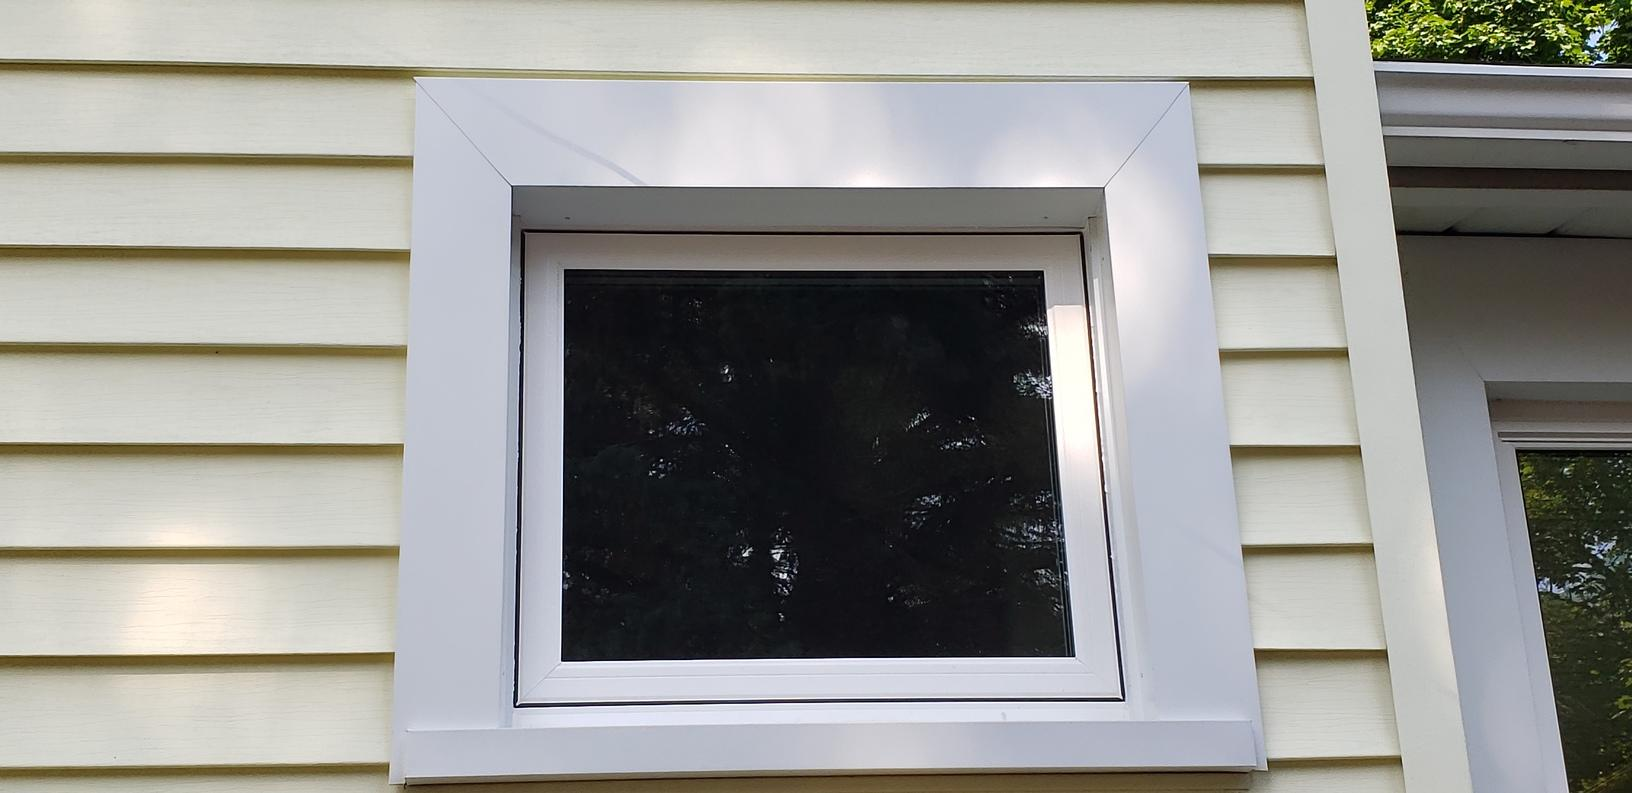 old picture windows were replaced with awning windows for ventilation